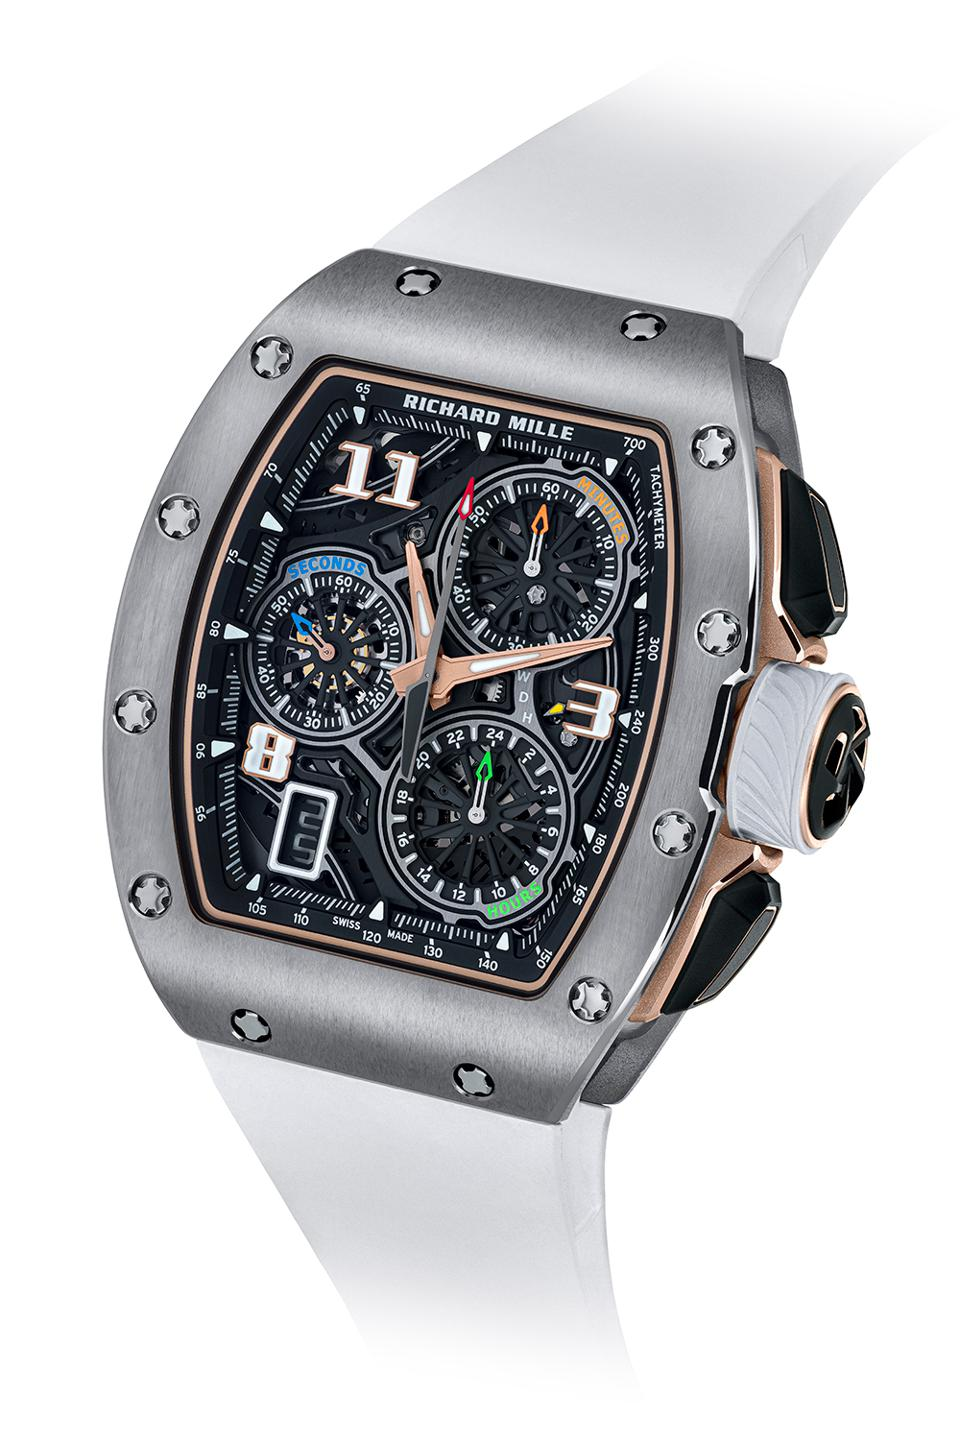 The Richard Mille RM 72-01 Lifestyle In-House Chronograph.